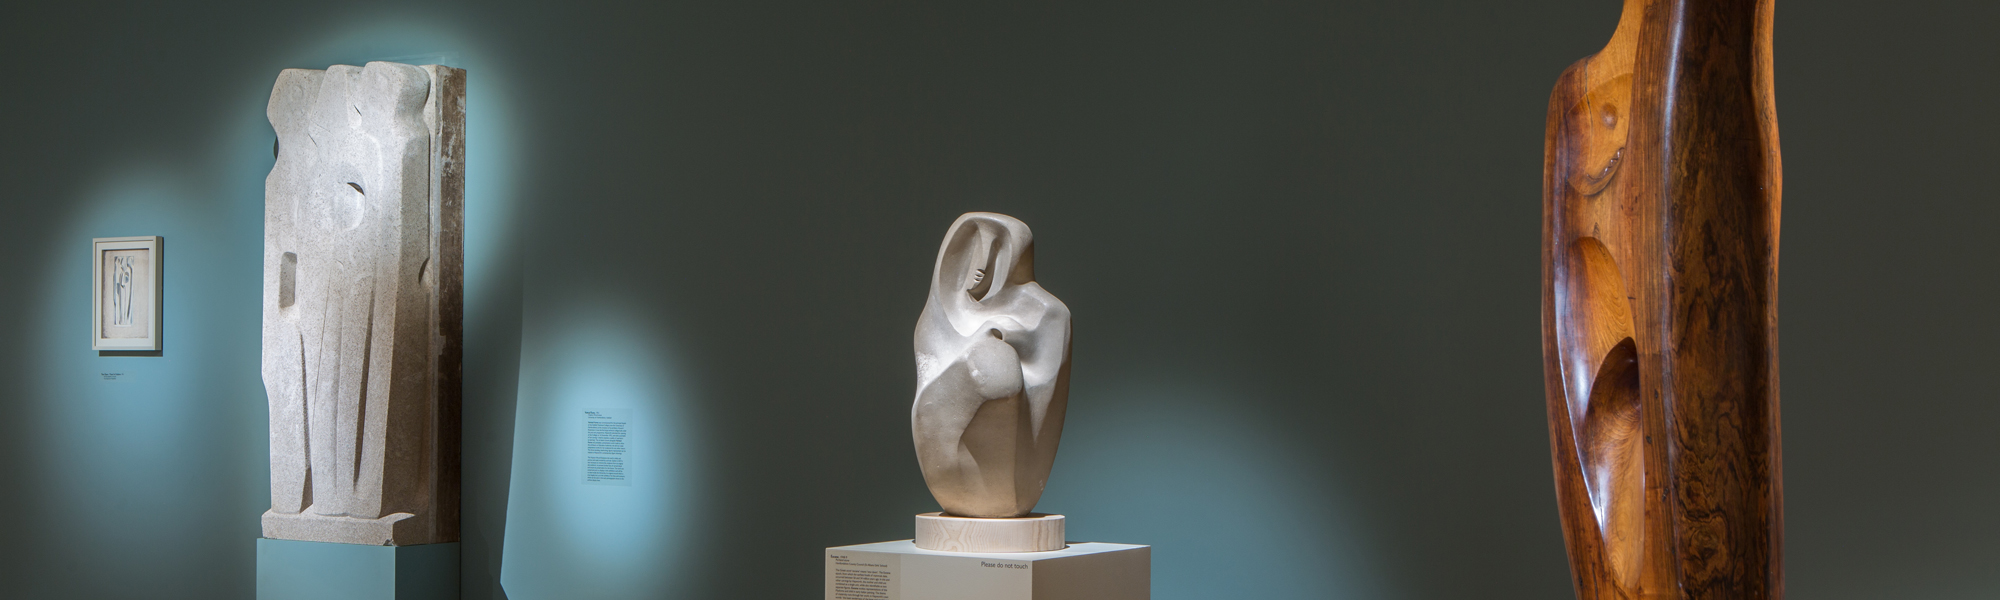 UHArts, Barbara Hepworth, artist in society 1948-53, Hepworth, Rob Harris